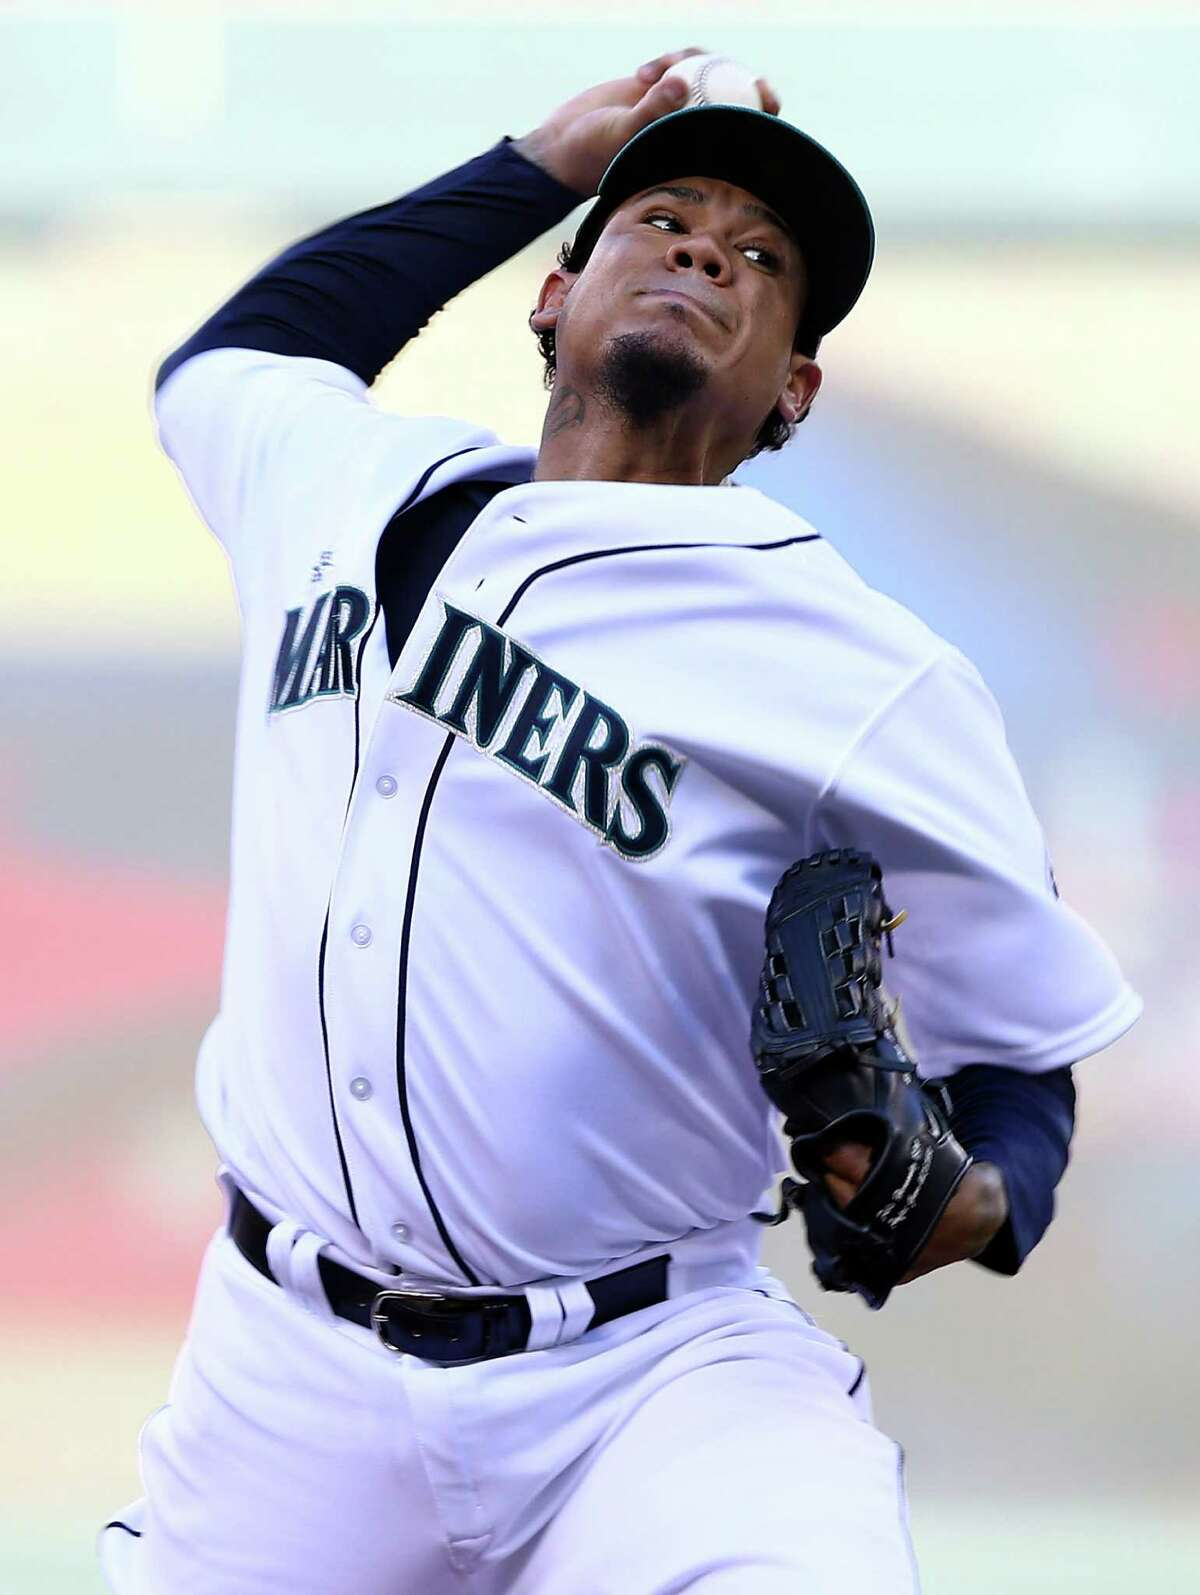 MINNEAPOLIS, MN - JULY 15: American League All-Star Felix Hernandez #34 of the Seattle Mariners pitches against the National League All-Stars during the 85th MLB All-Star Game at Target Field on July 15, 2014 in Minneapolis, Minnesota.